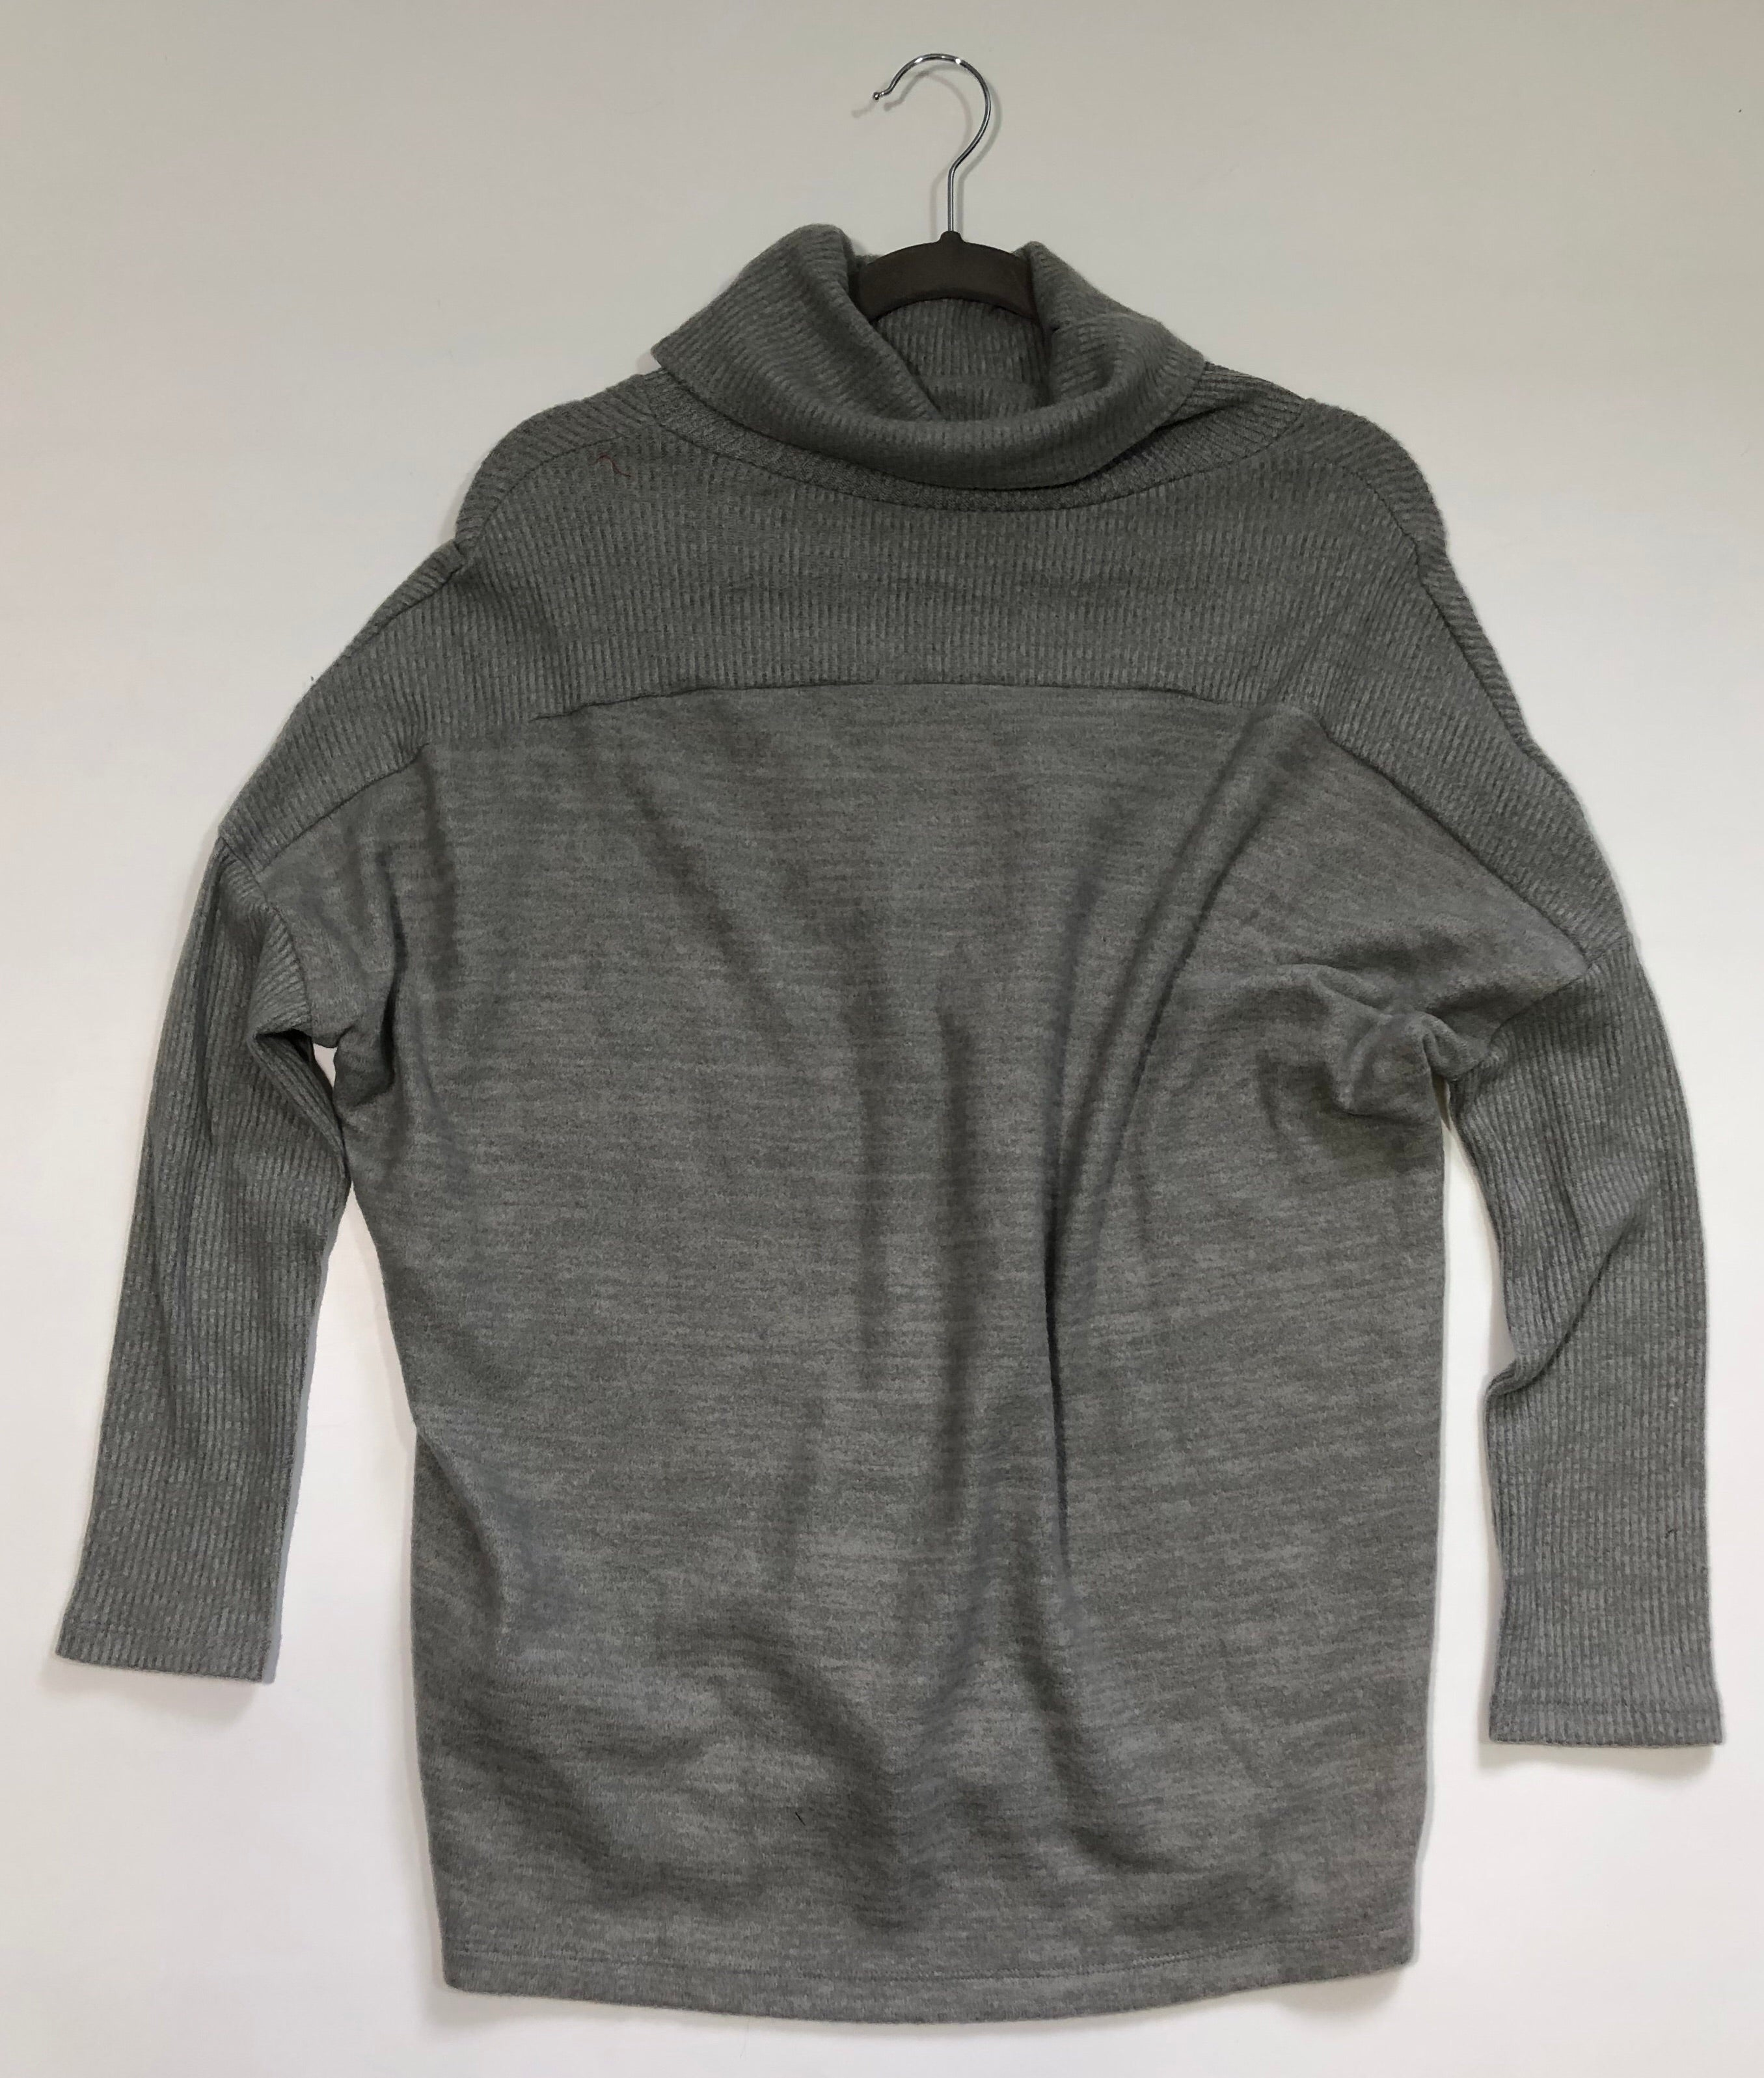 Button Cowl Lt Grey Sweater Top